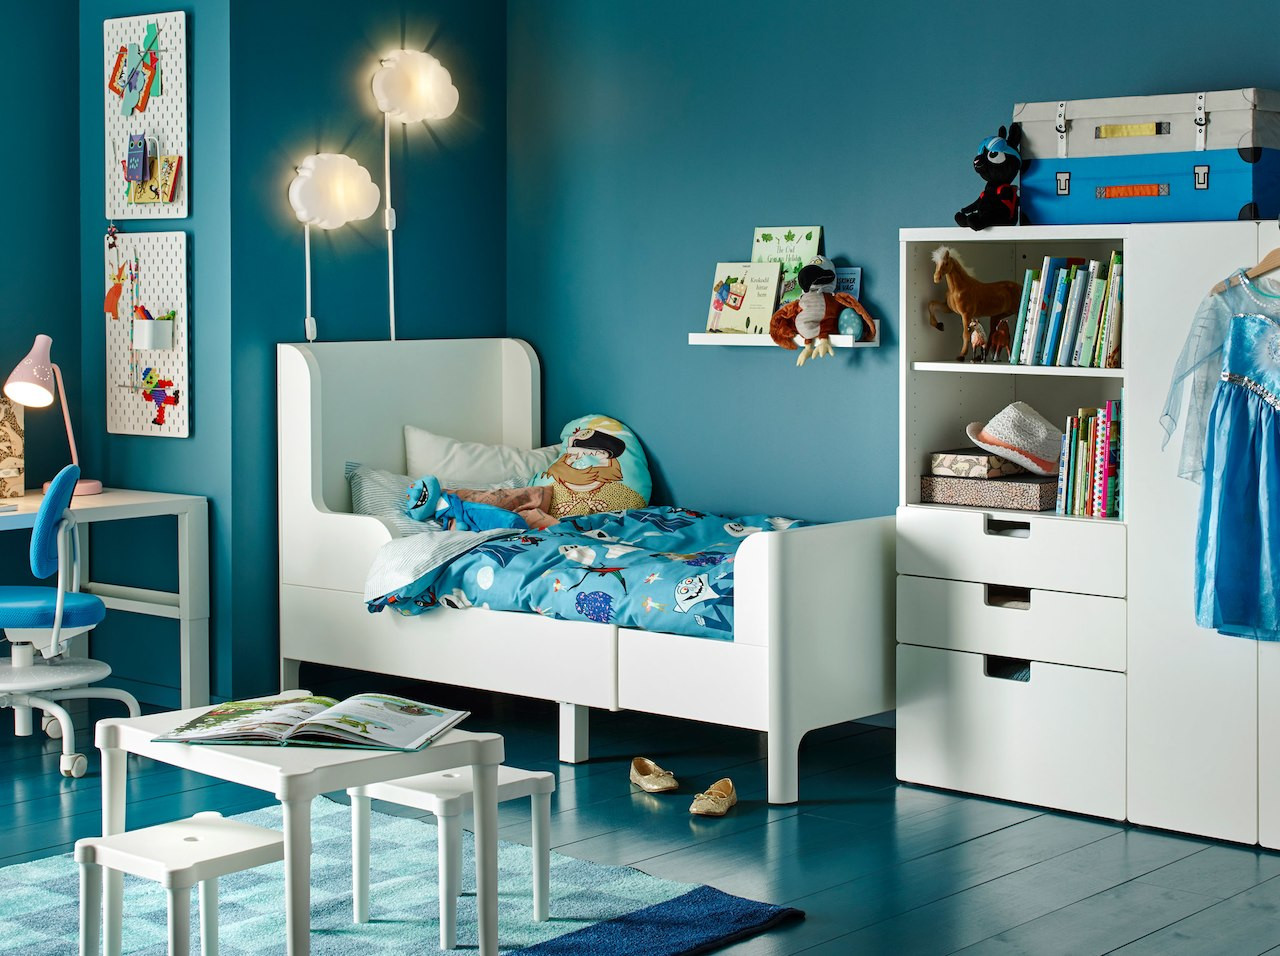 Best ideas about Kids Room Ideas Boy . Save or Pin Kids Room Decor Luxury Room For Kids Ideas Luxury Room Now.